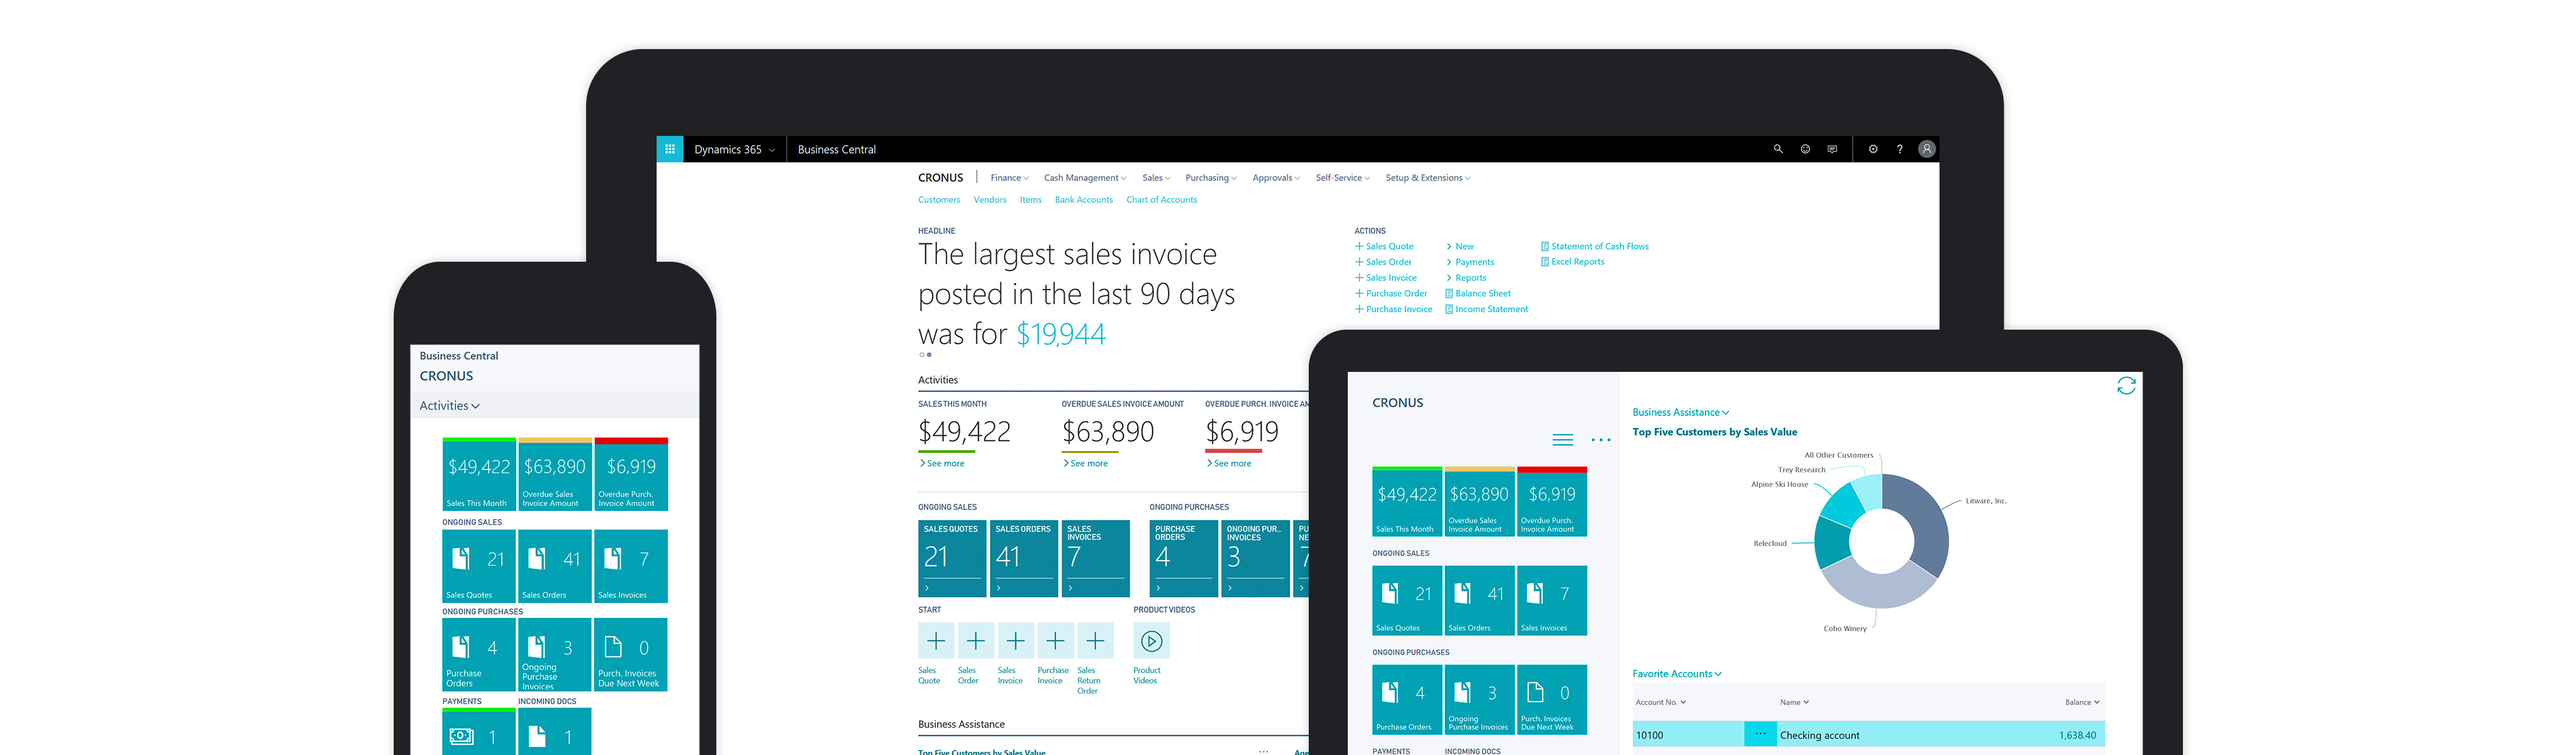 Are you ready to talk Microsoft Dynamics 365 Business Central?